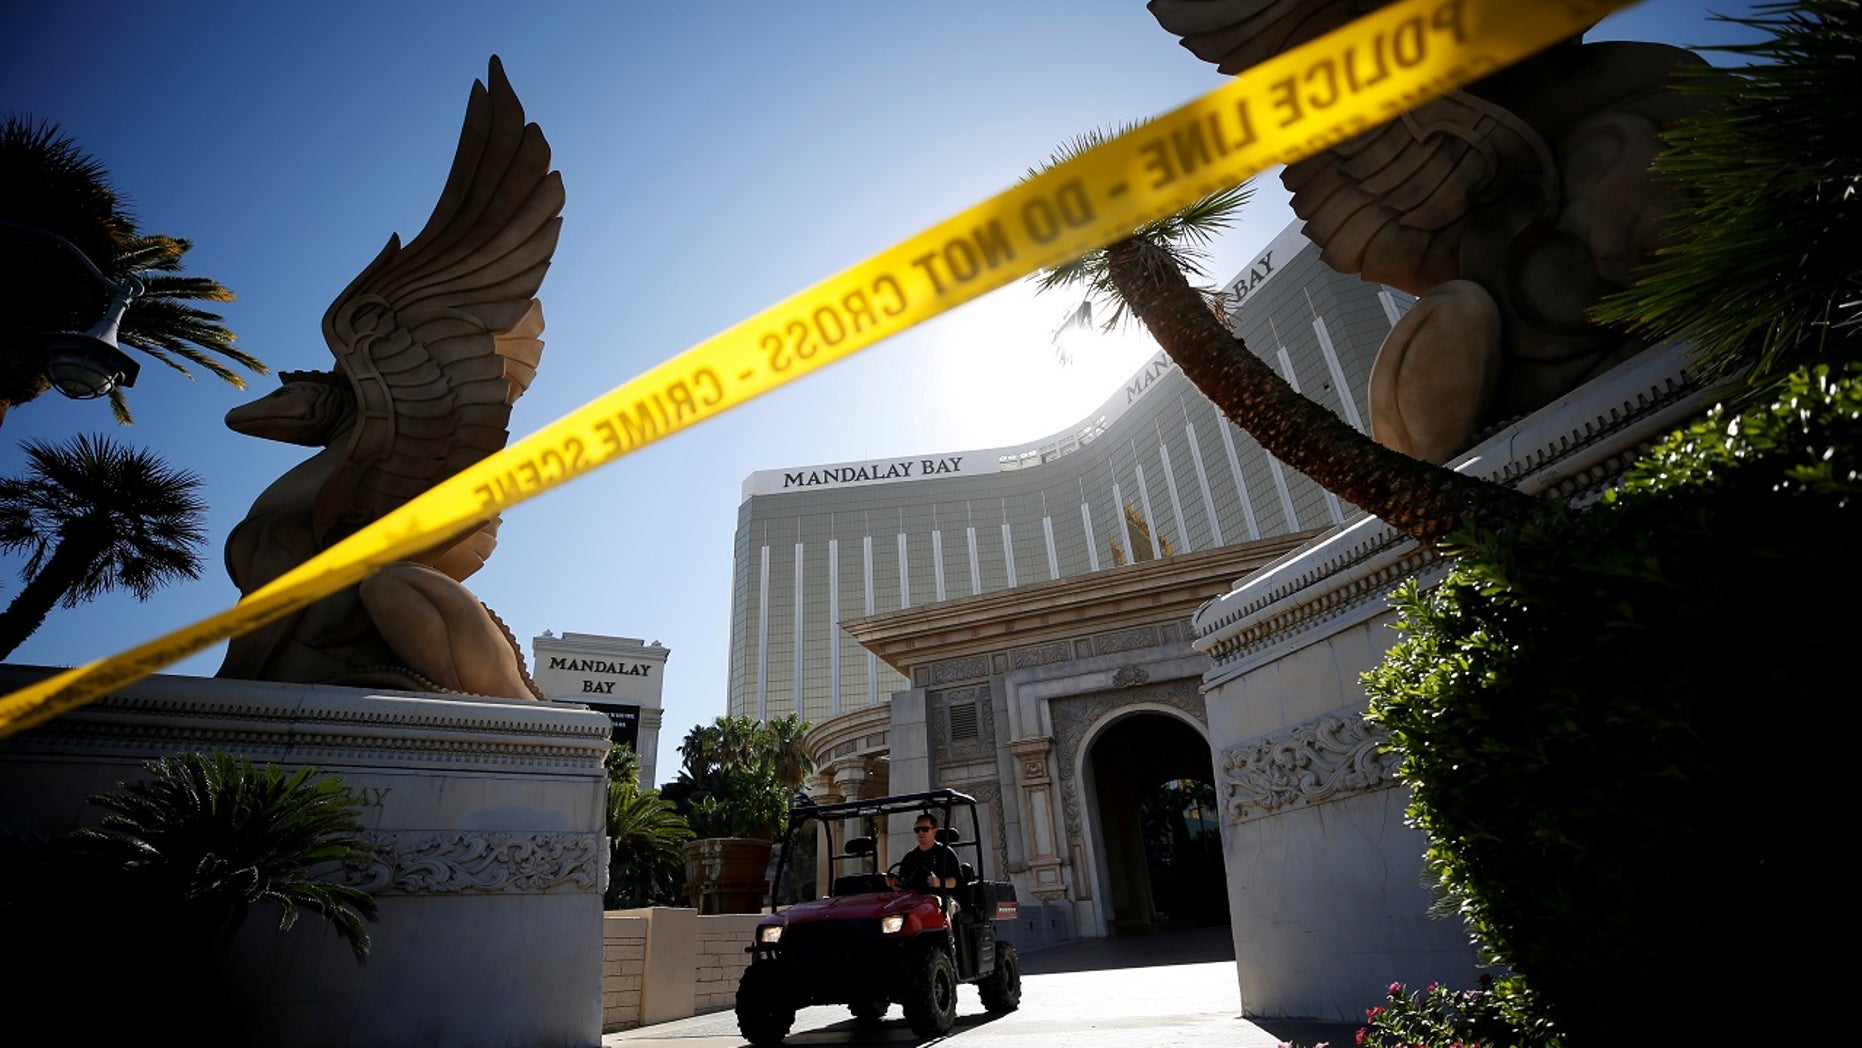 A member of the FBI leaves the Mandalay Bay hotel following the mass shooting in Las Vegas, Oct. 4, 2017.